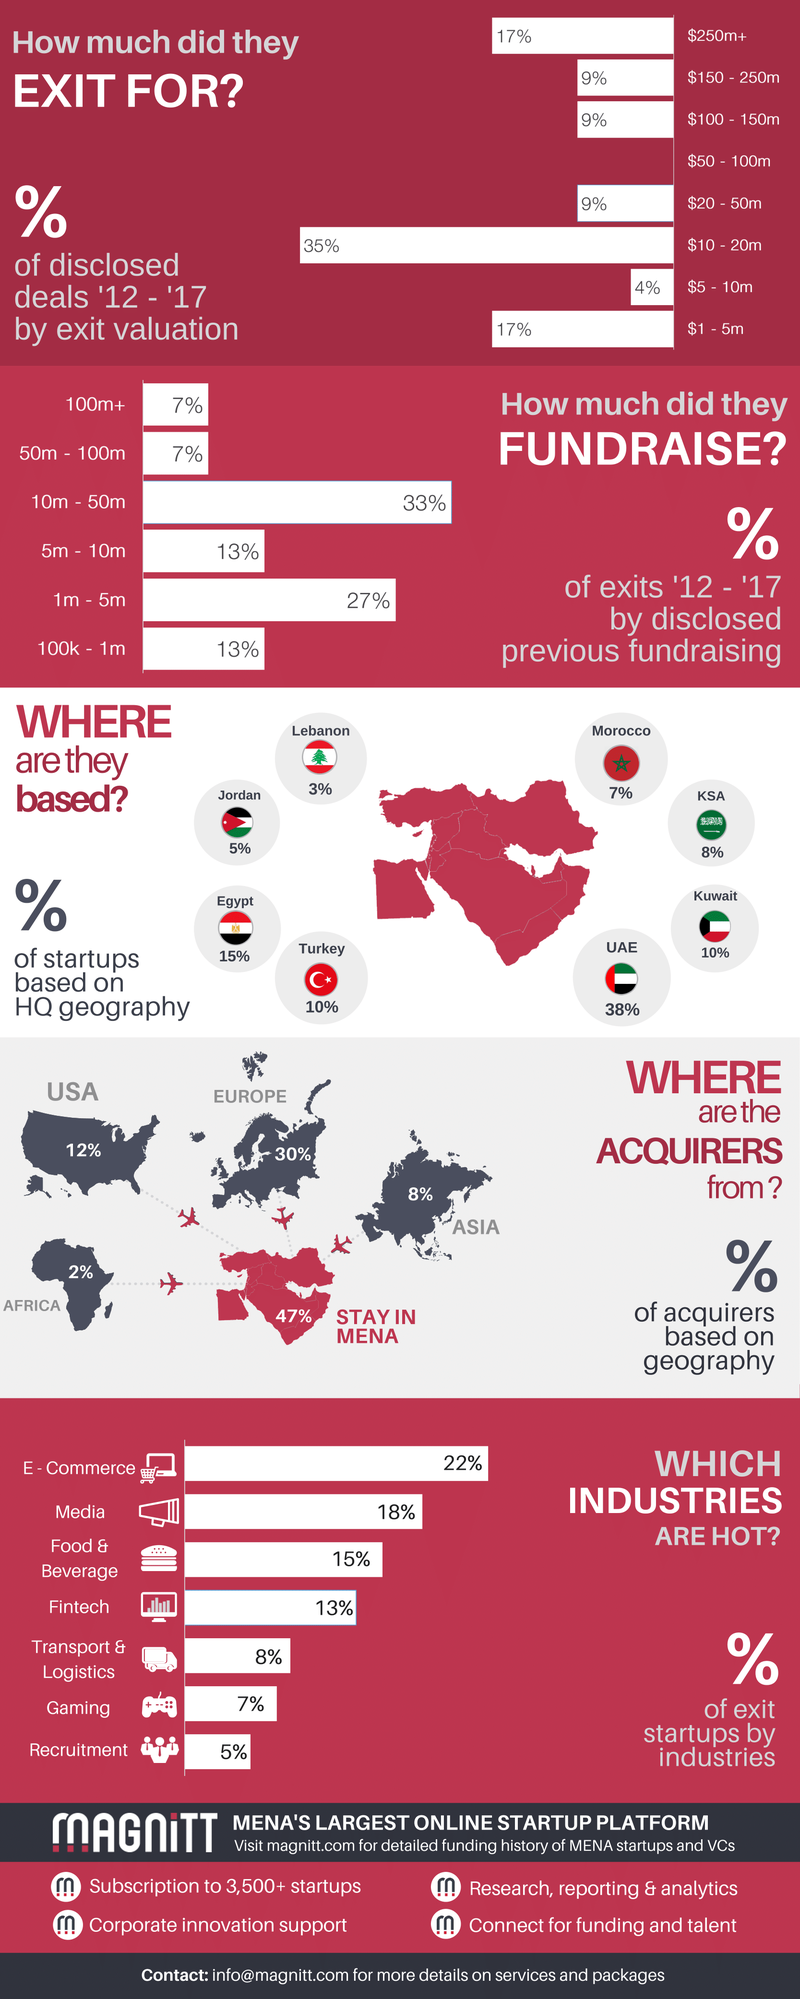 MENA Exits and Fundraise